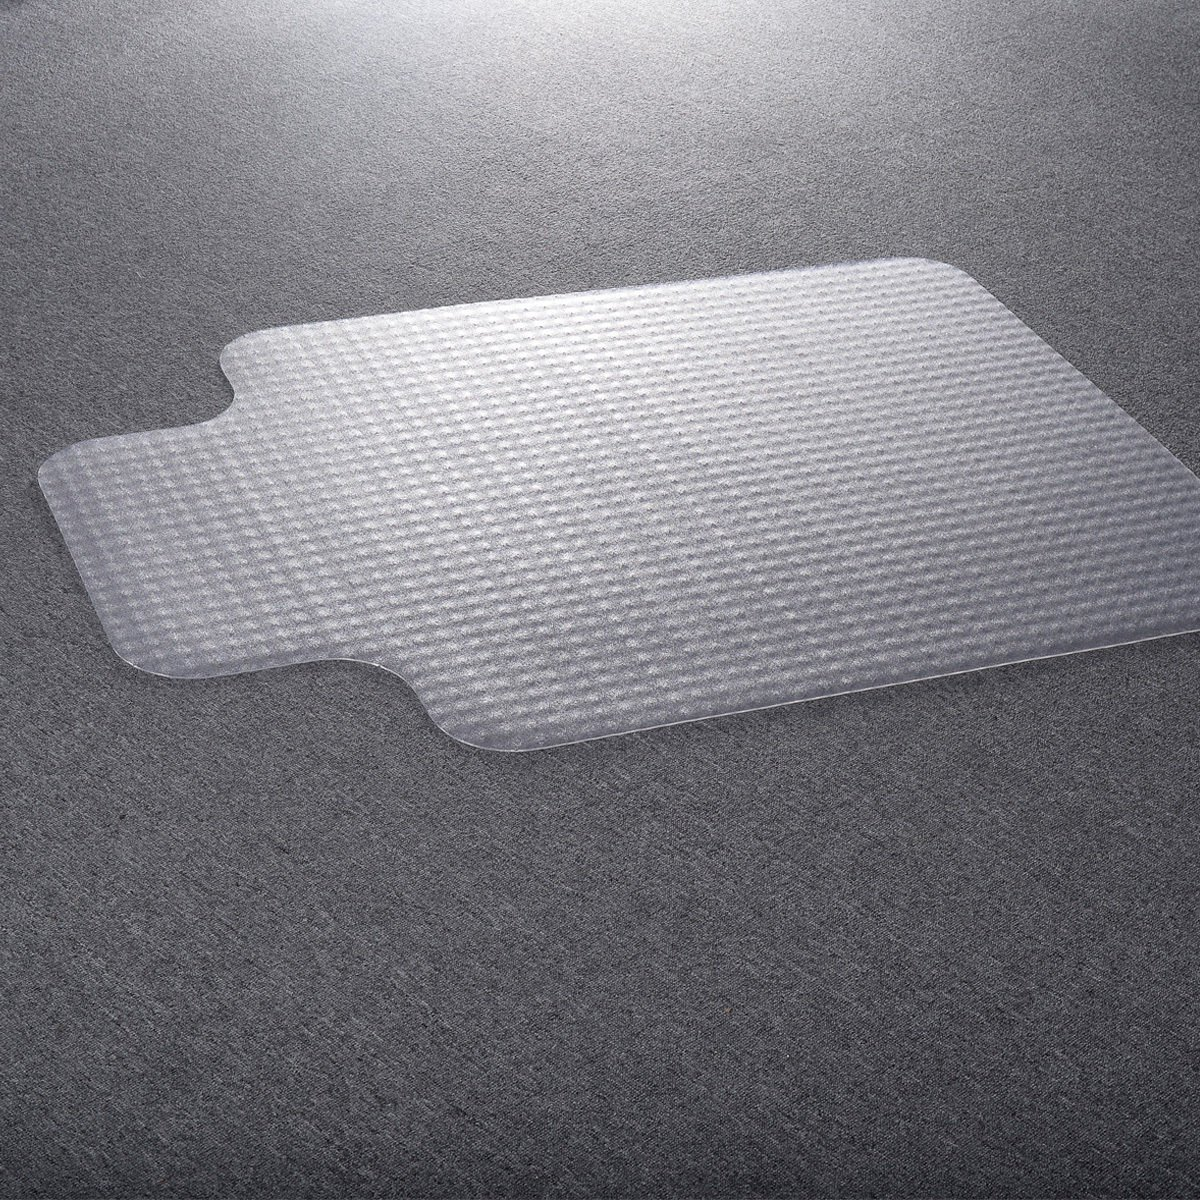 Costway 90 X 120cm PVC Floor Mat Home Office Chair Studded Back Lip Standard Pile Carpet